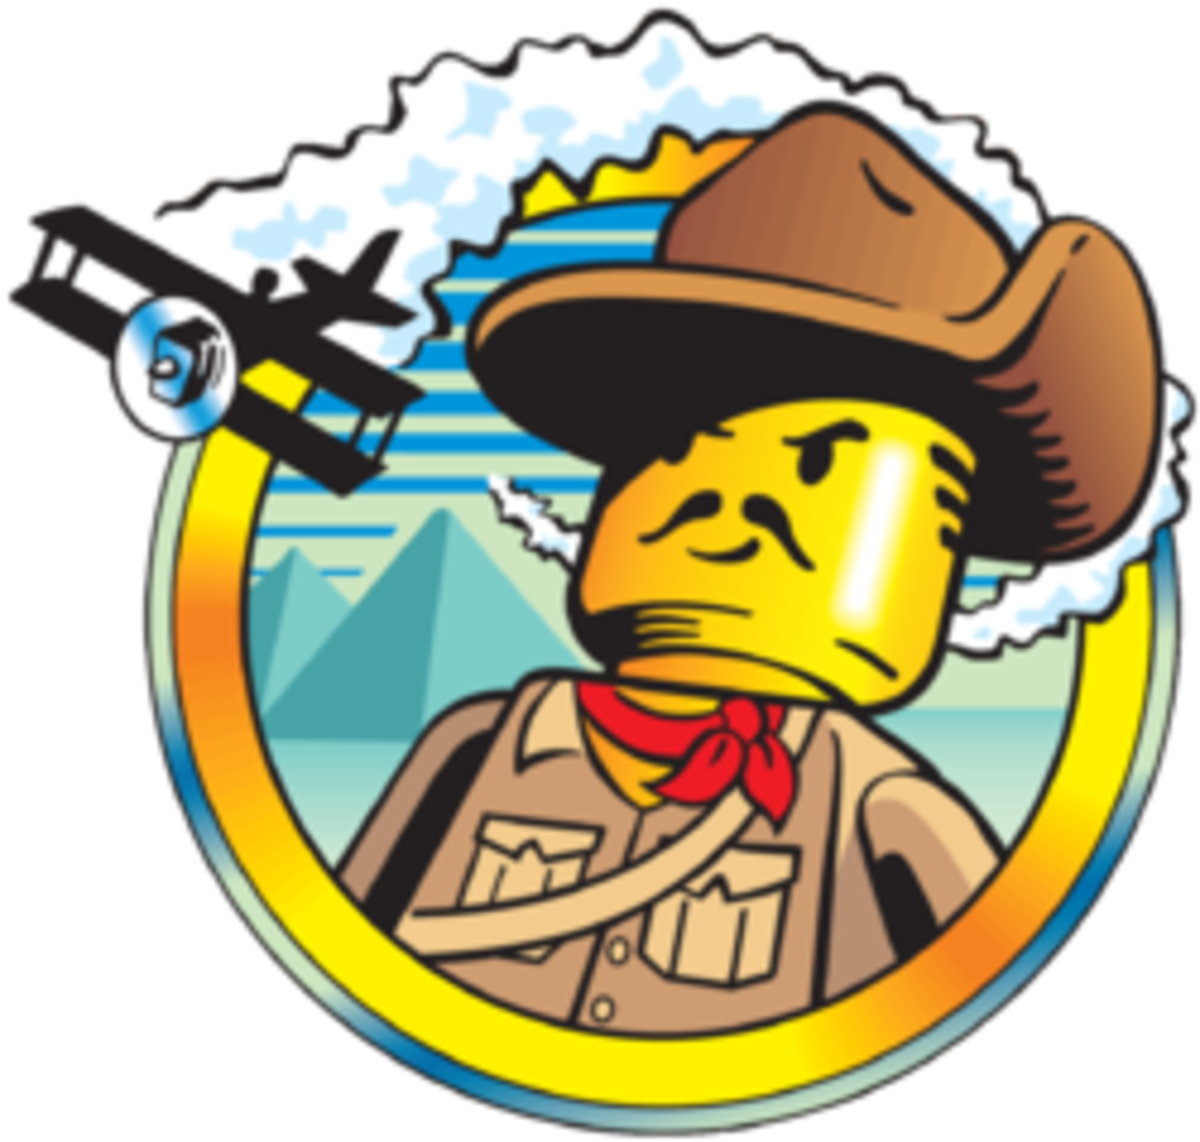 The logo for the Lego Adventurers sets. Sadly cancelled.